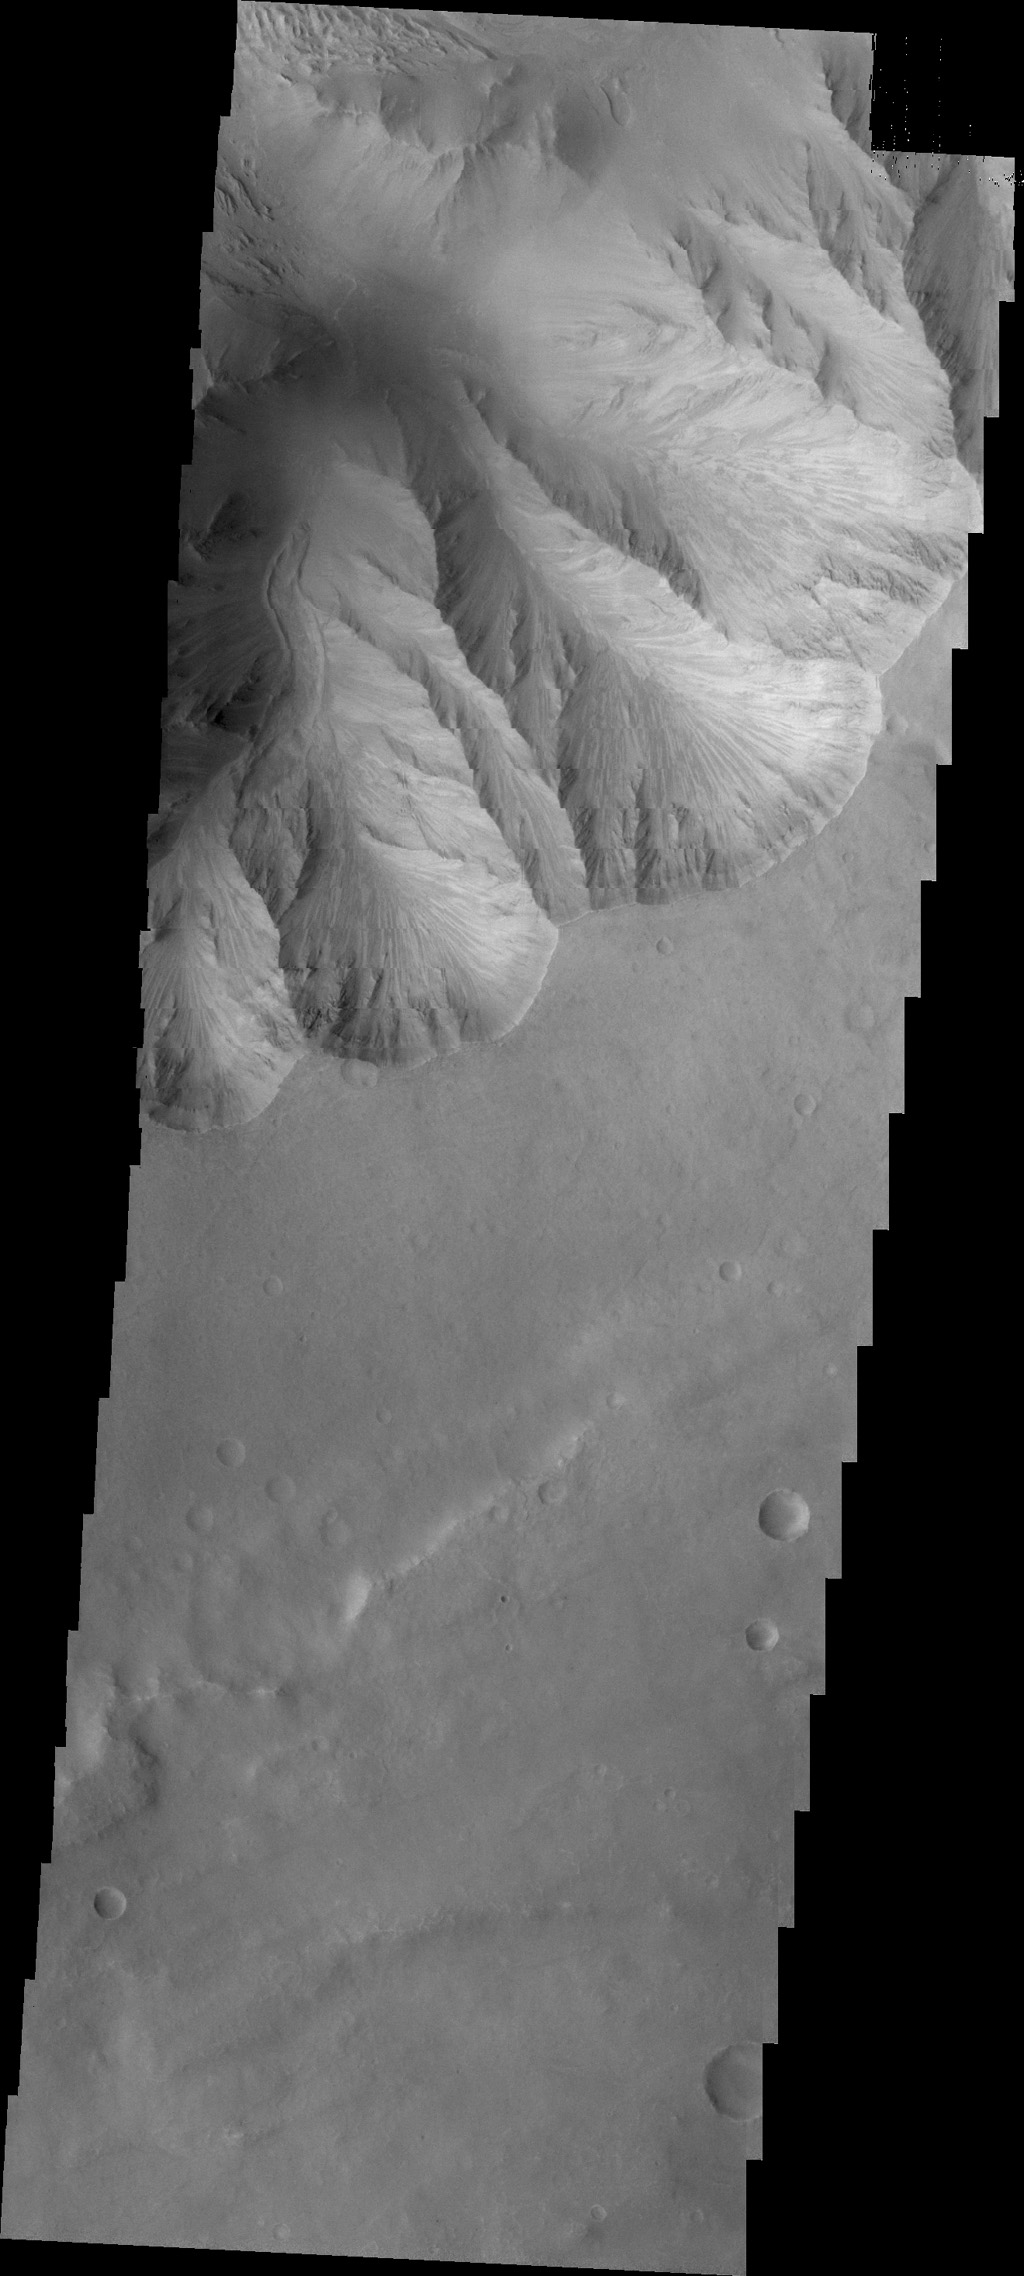 This image from NASA's 2001 Mars Odyssey spacecraft shows a small landslide chute and deposit. This feature is located on the easternmost end of Candor Chasma.